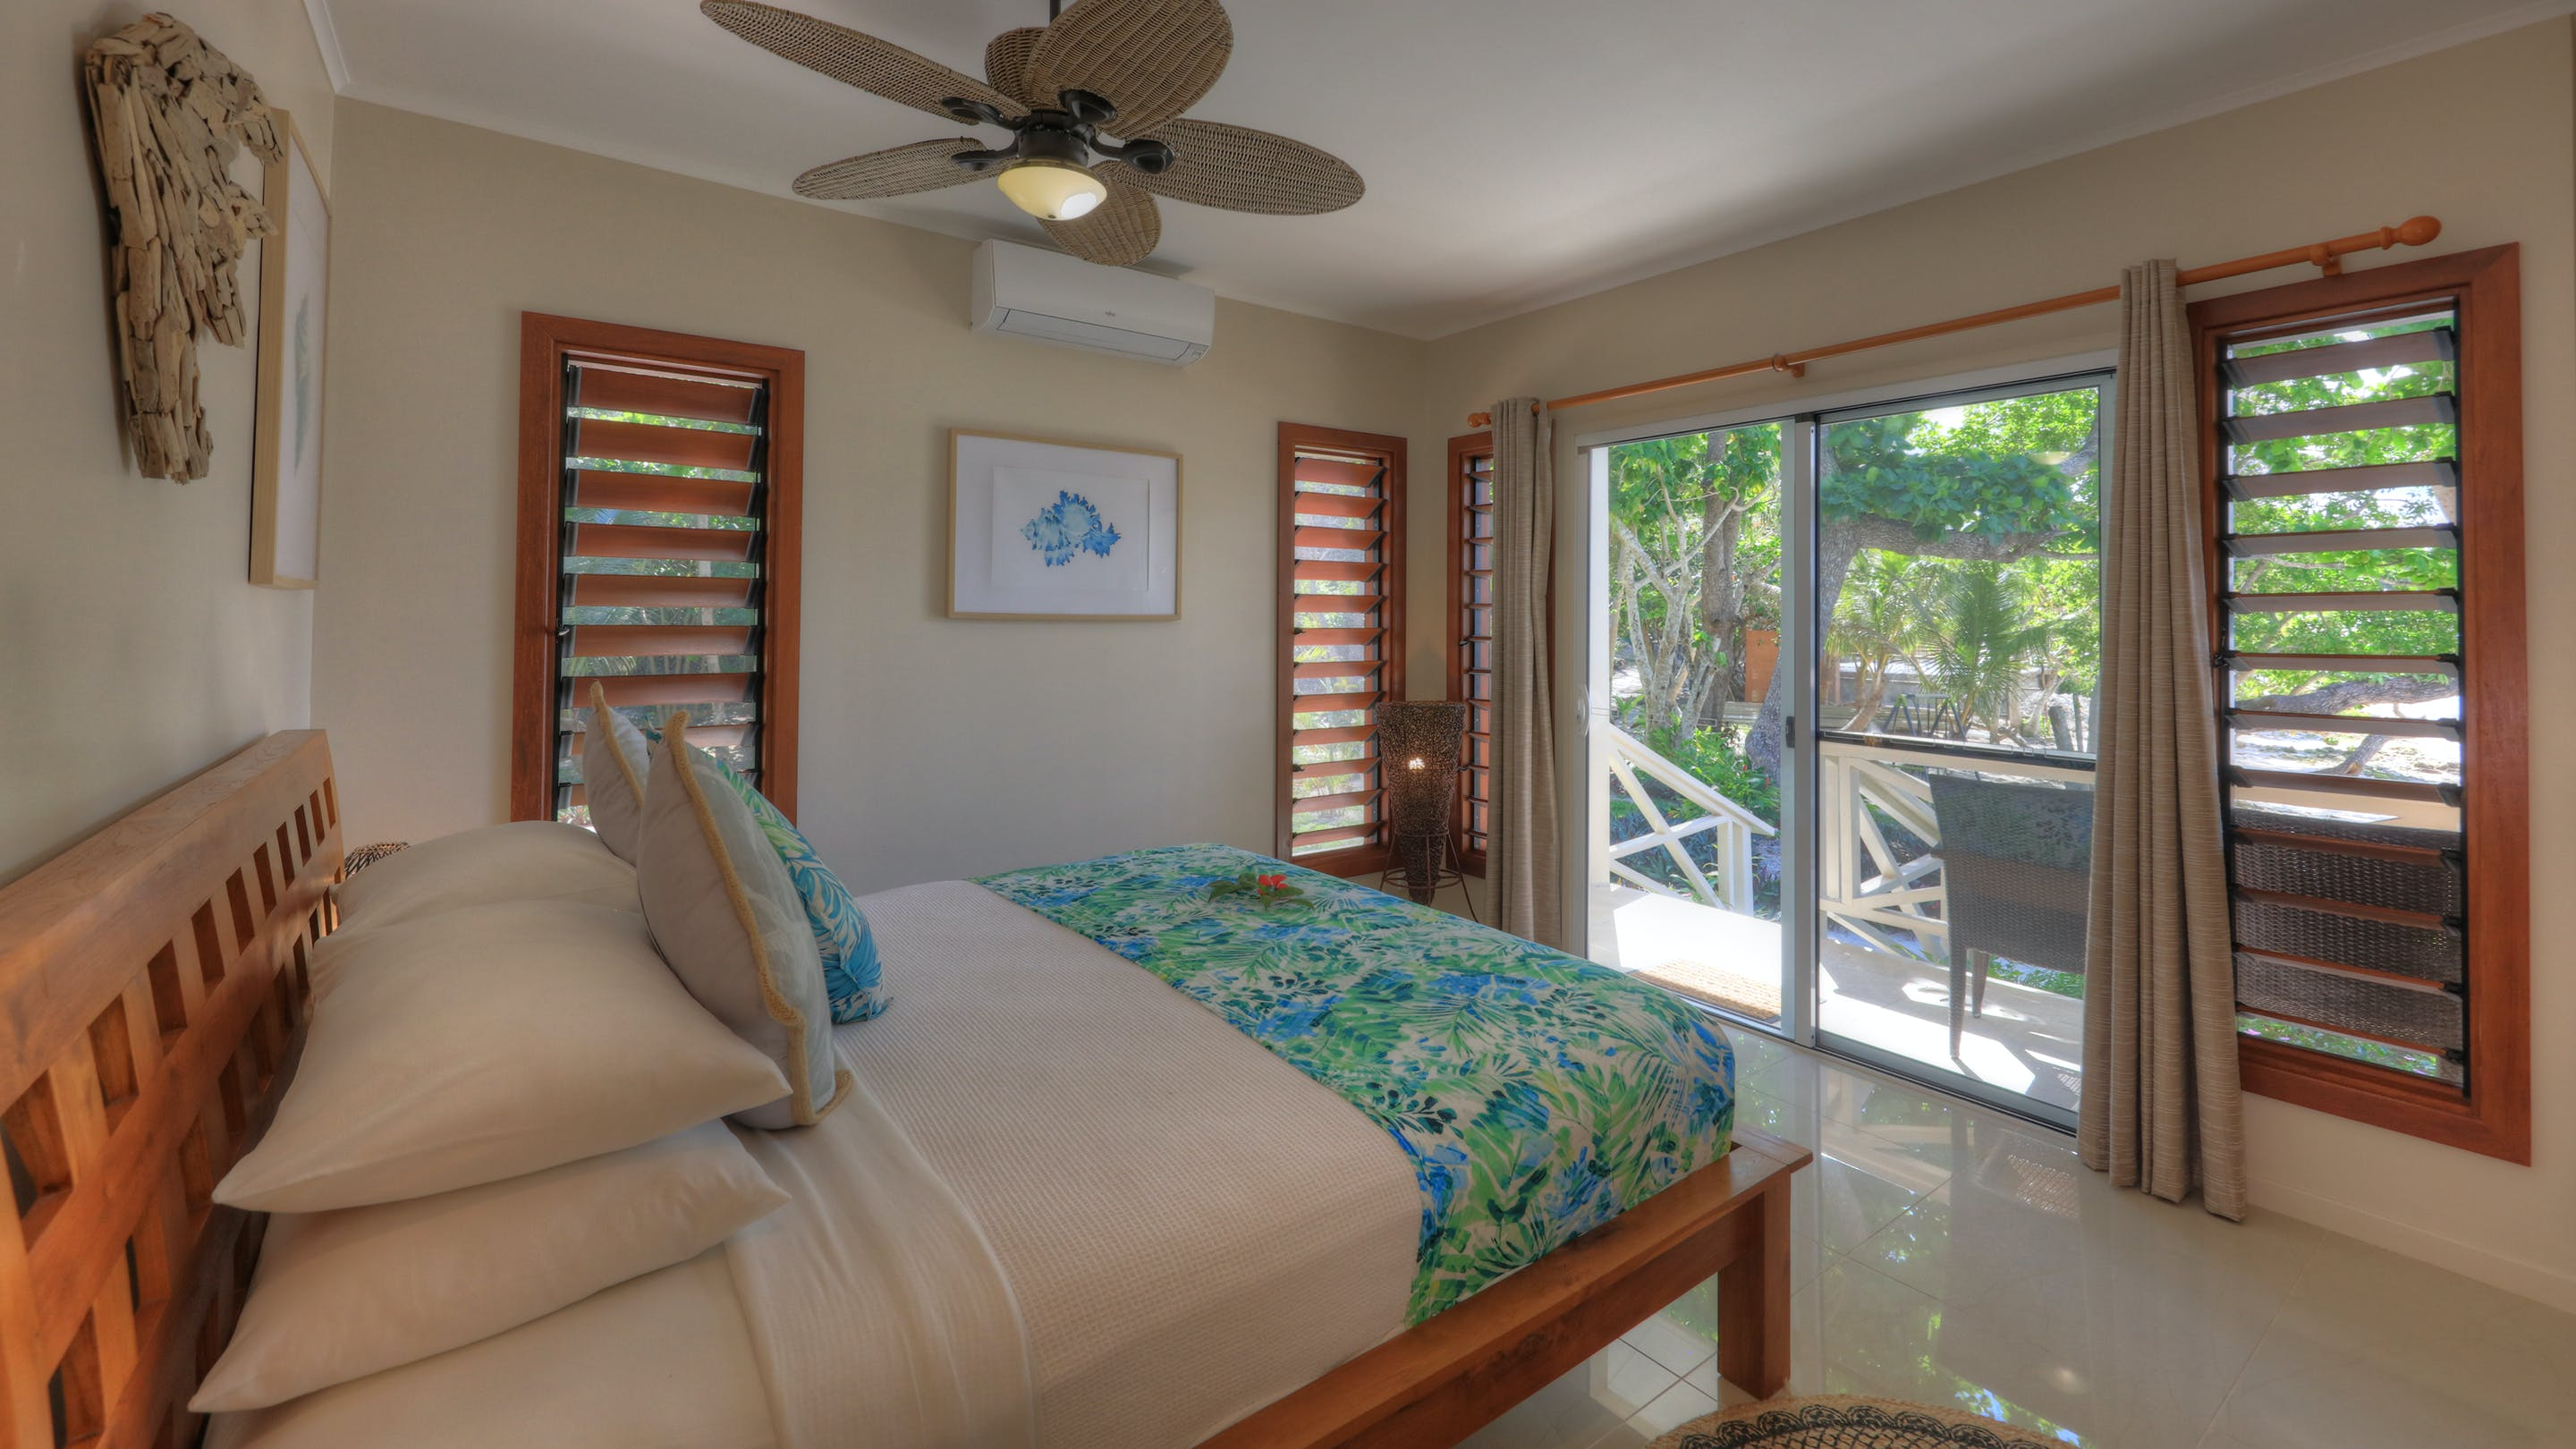 erakor island resort beach cottage master bedroom #erakorislandresort #tropicalislandholiday #Vanuatuaccommodation